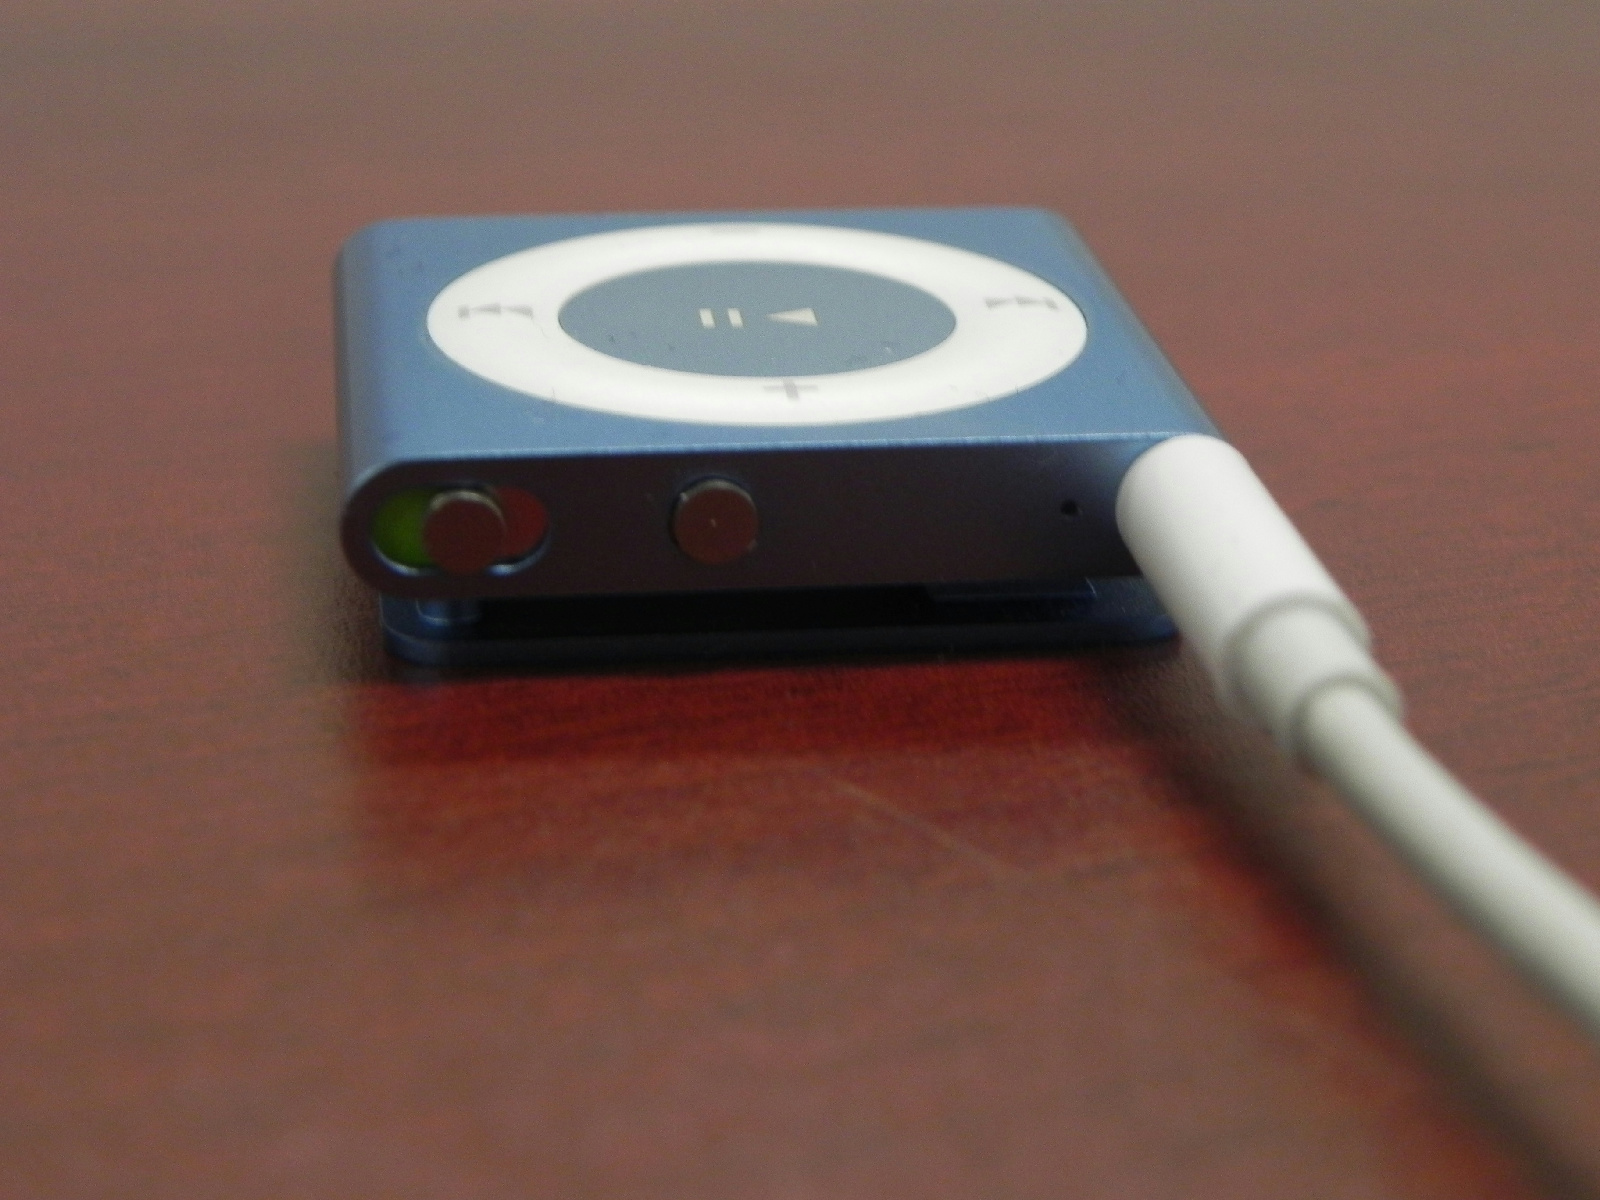 apple ipod shuffle 4th gen wheel voiceover 2 gb ebay. Black Bedroom Furniture Sets. Home Design Ideas